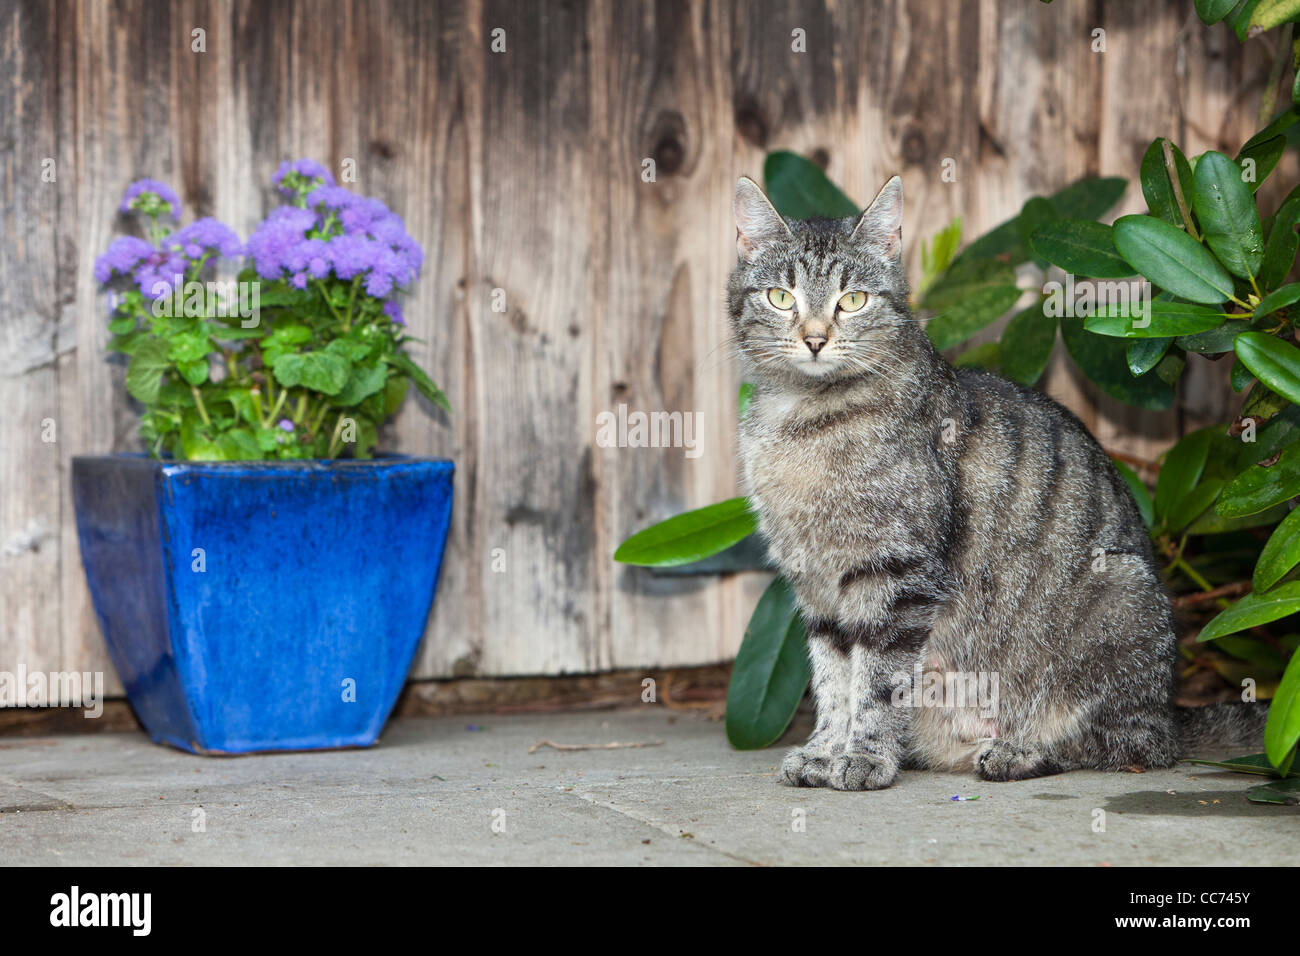 Domestic Cat, Sitting in front of Garden Shed, Lower Saxony, Germany - Stock Image